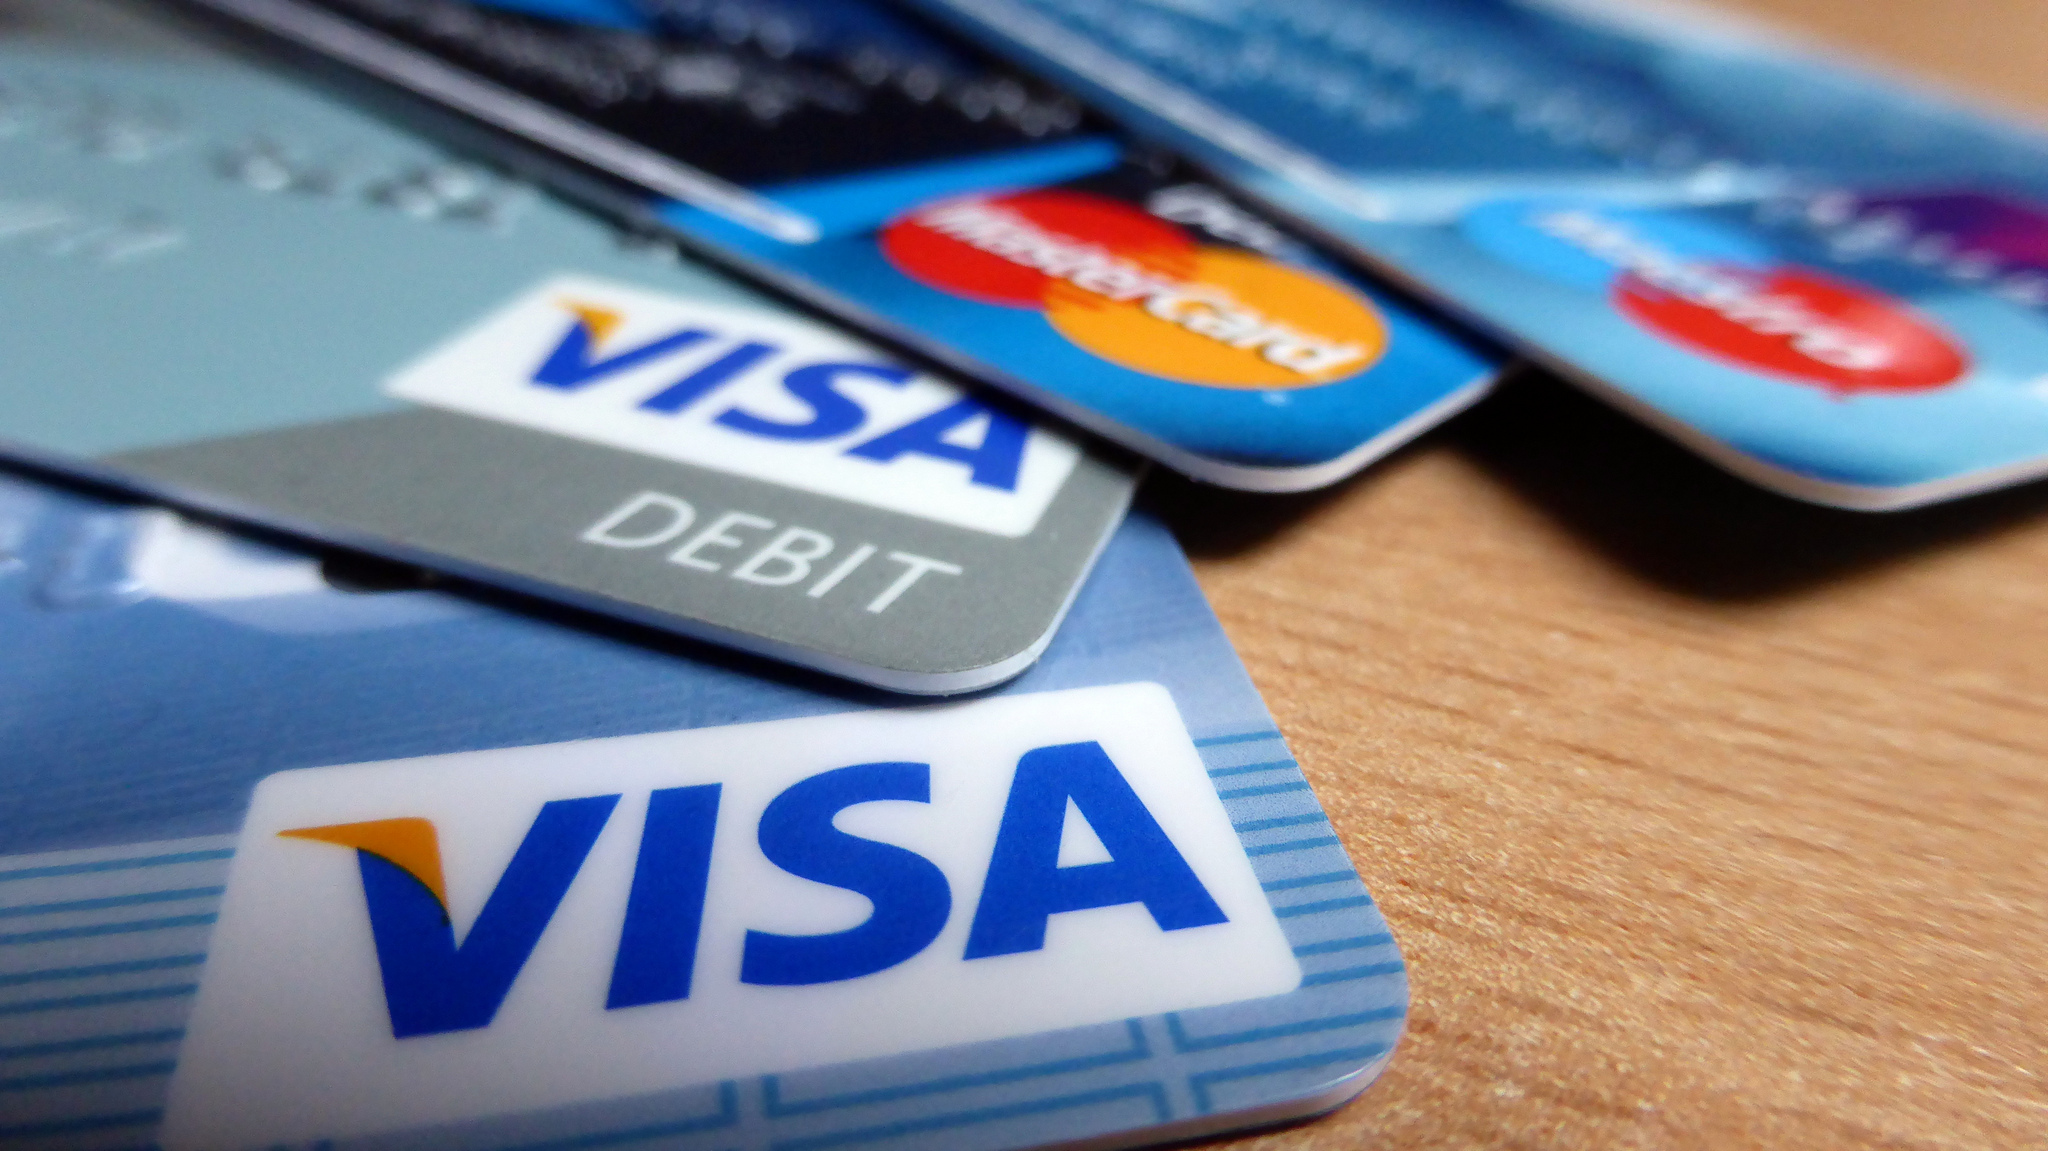 Selecting the right credit card will help you achieve many of your life goals ... photo by CC user smemon on flickr